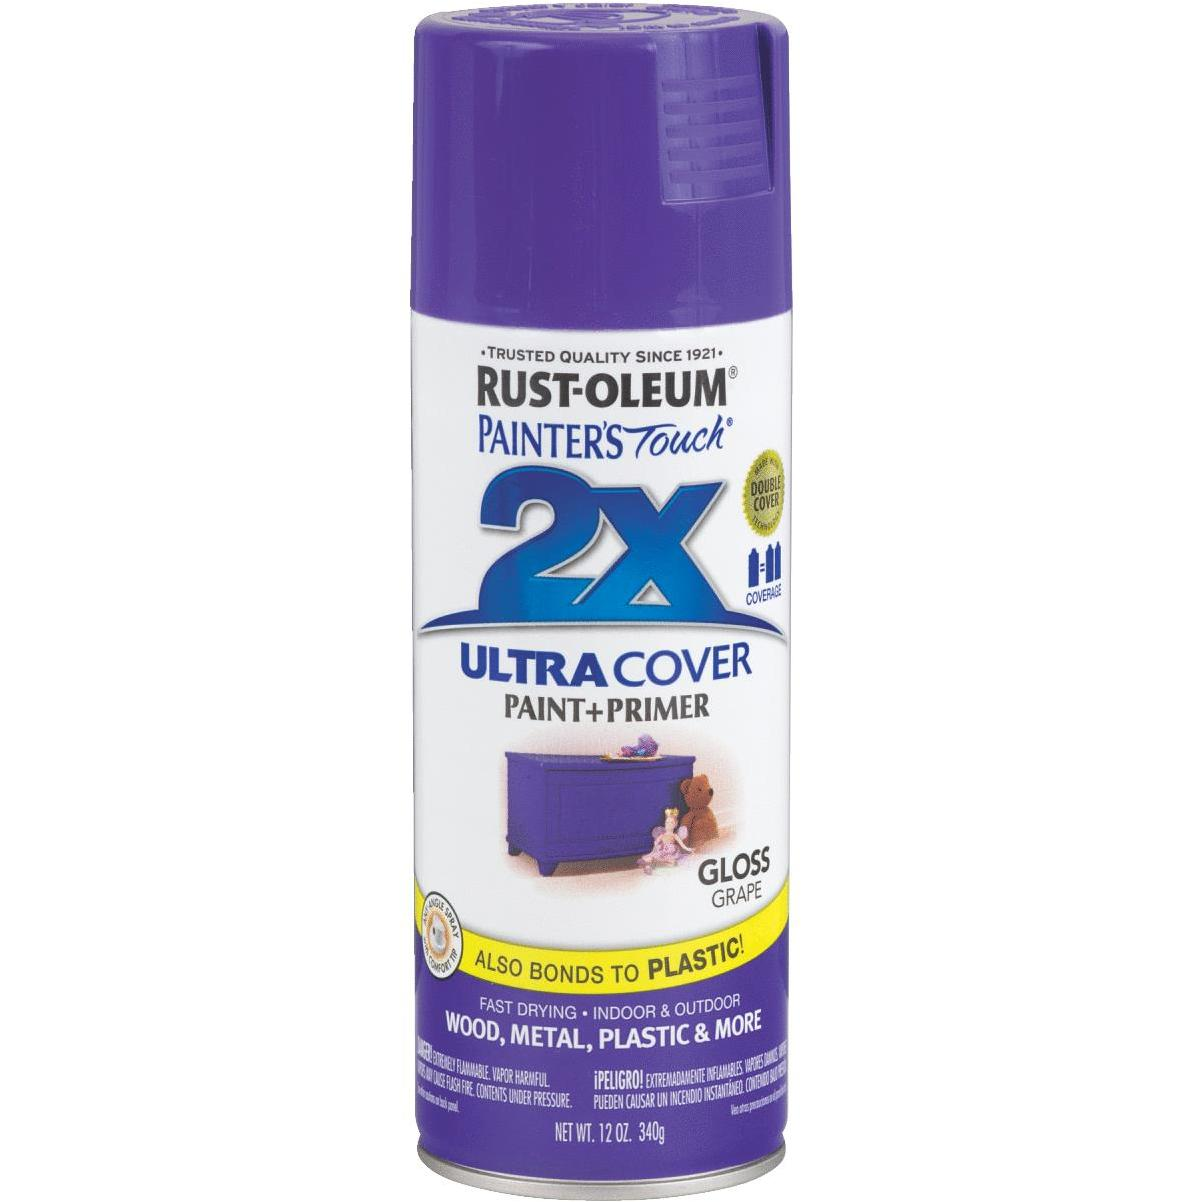 Rust Oleum Painter S Touch 2x Ultra Cover 12 Oz Gloss Paint Primer Spray Paint Grape Bloomer Hardware